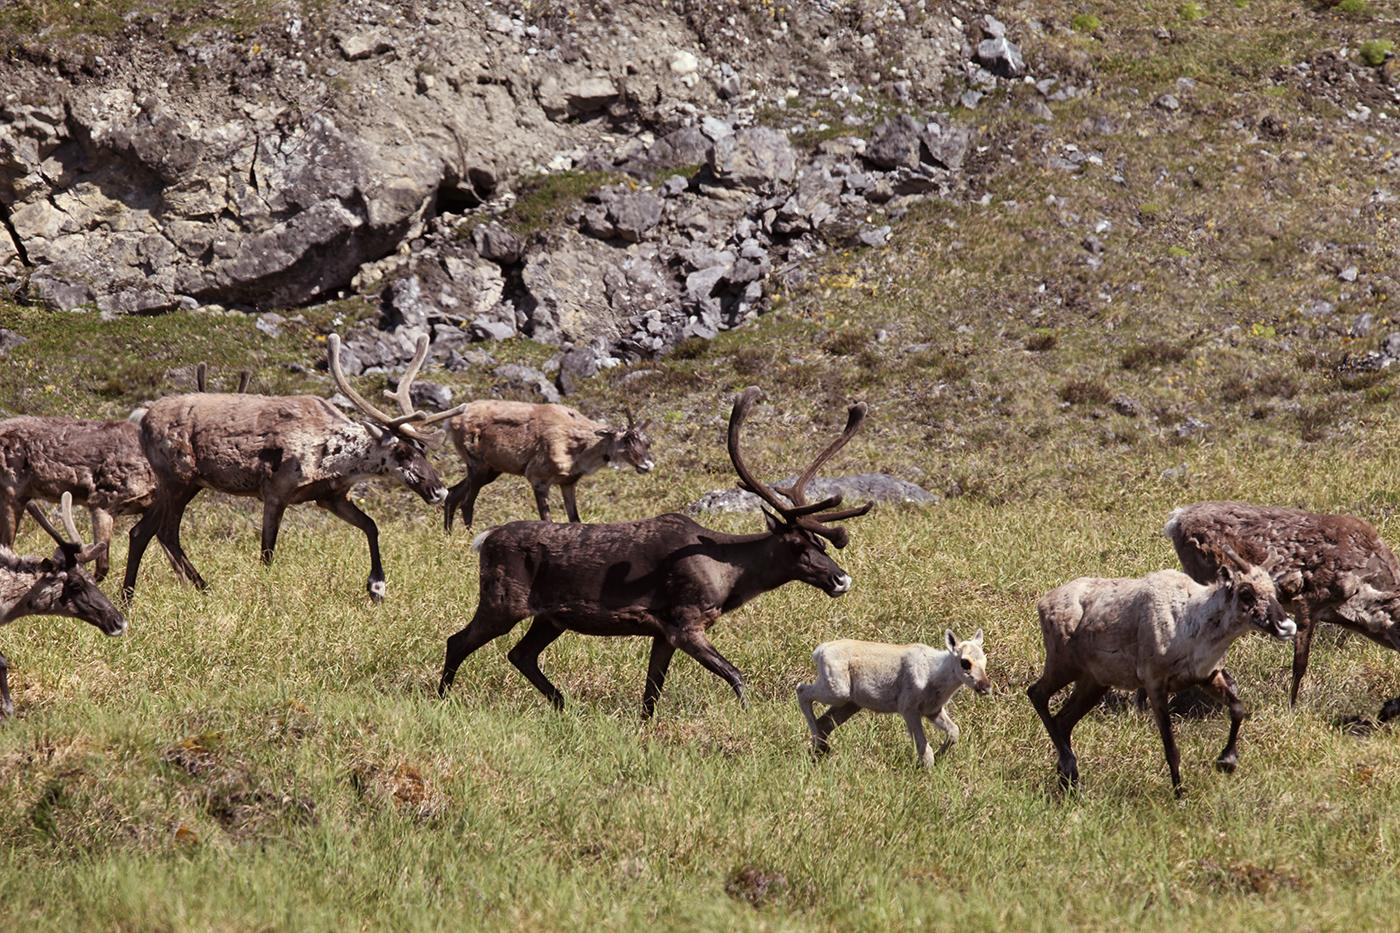 Porcupine Caribou Herd bulls come together with cows and their calves during the annual aggregation event in the Arctic National Wildlife Refuge, Alaska. Photo: Max Hug Williams